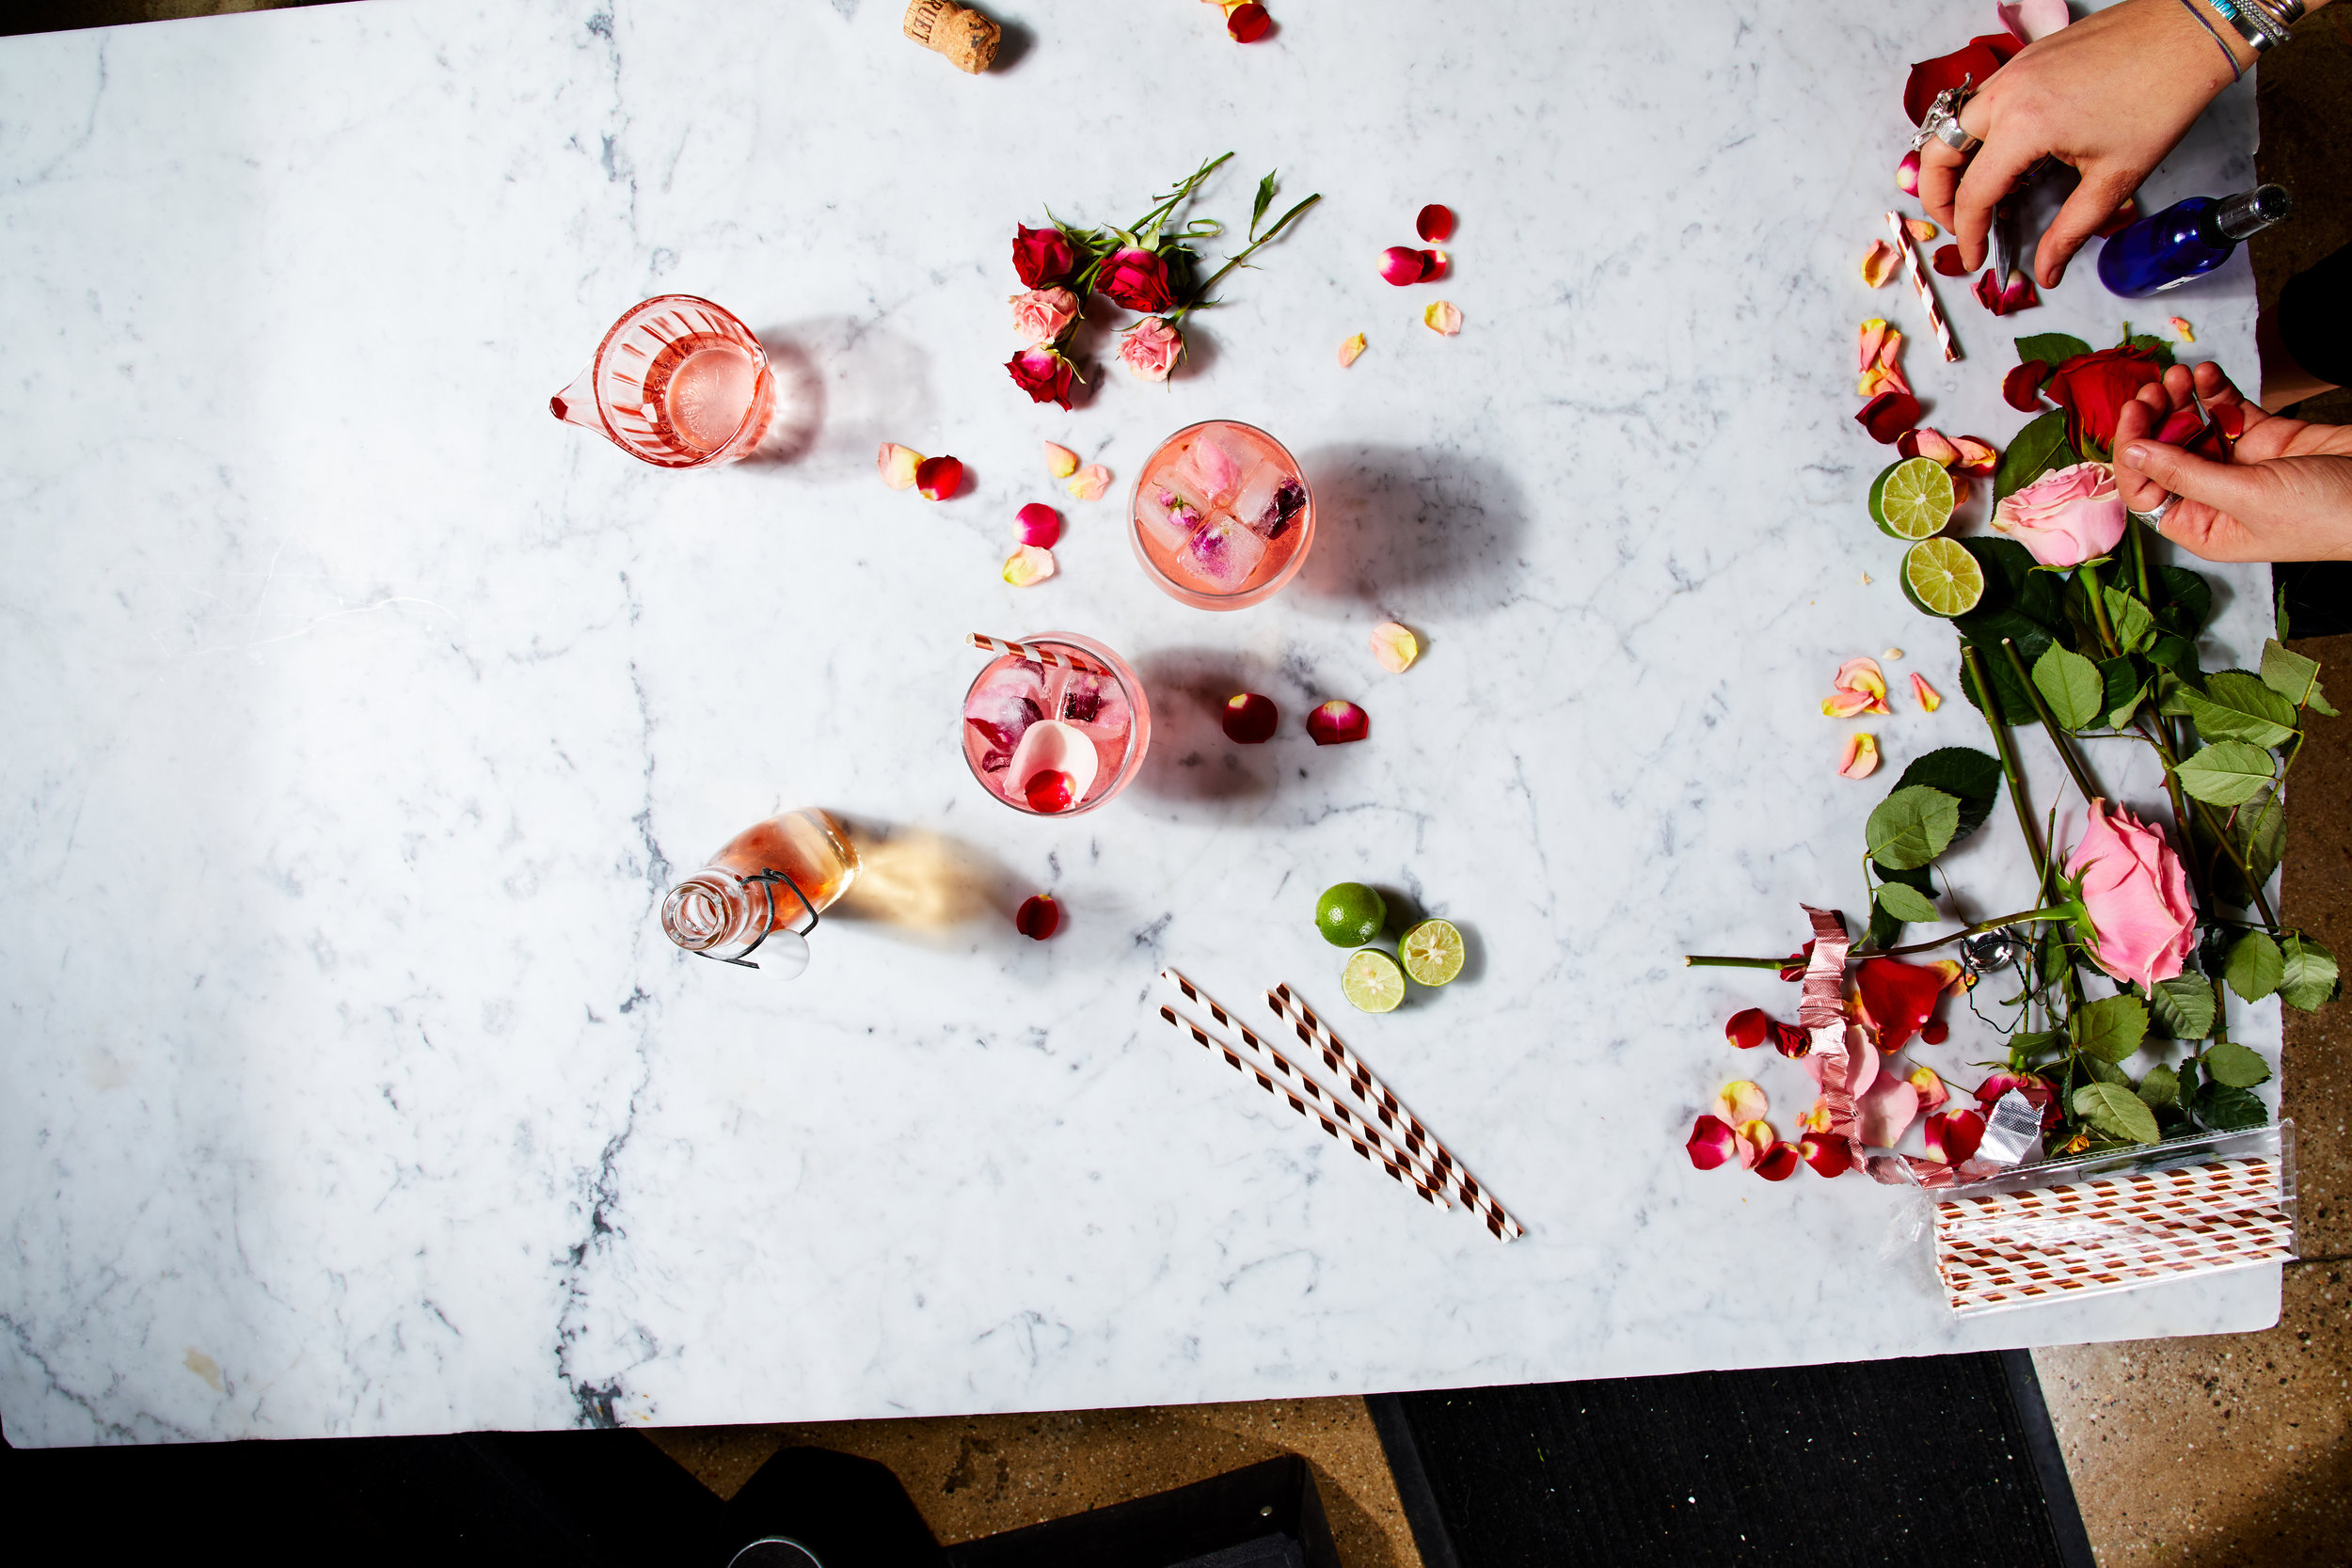 On-set food and prop styling for client HelloFresh. Image used with permission.